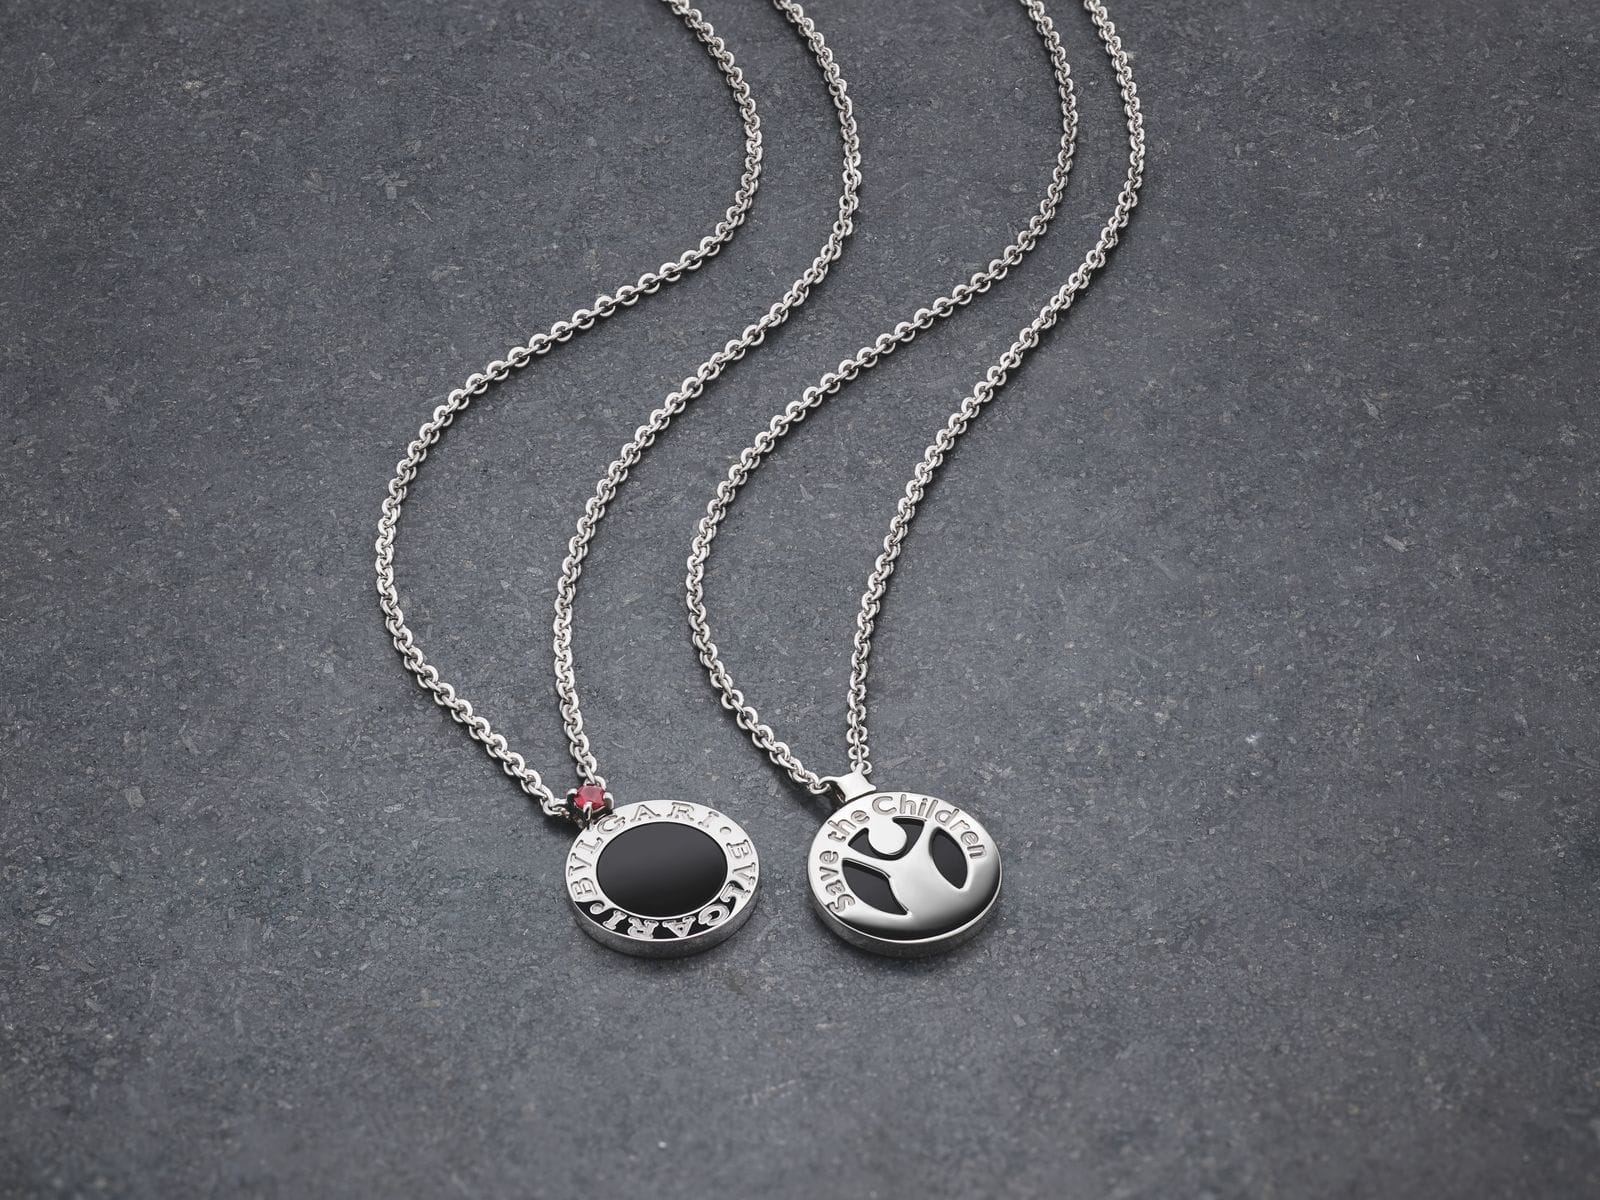 Bvlgari create a silver pendant to support Save The Children